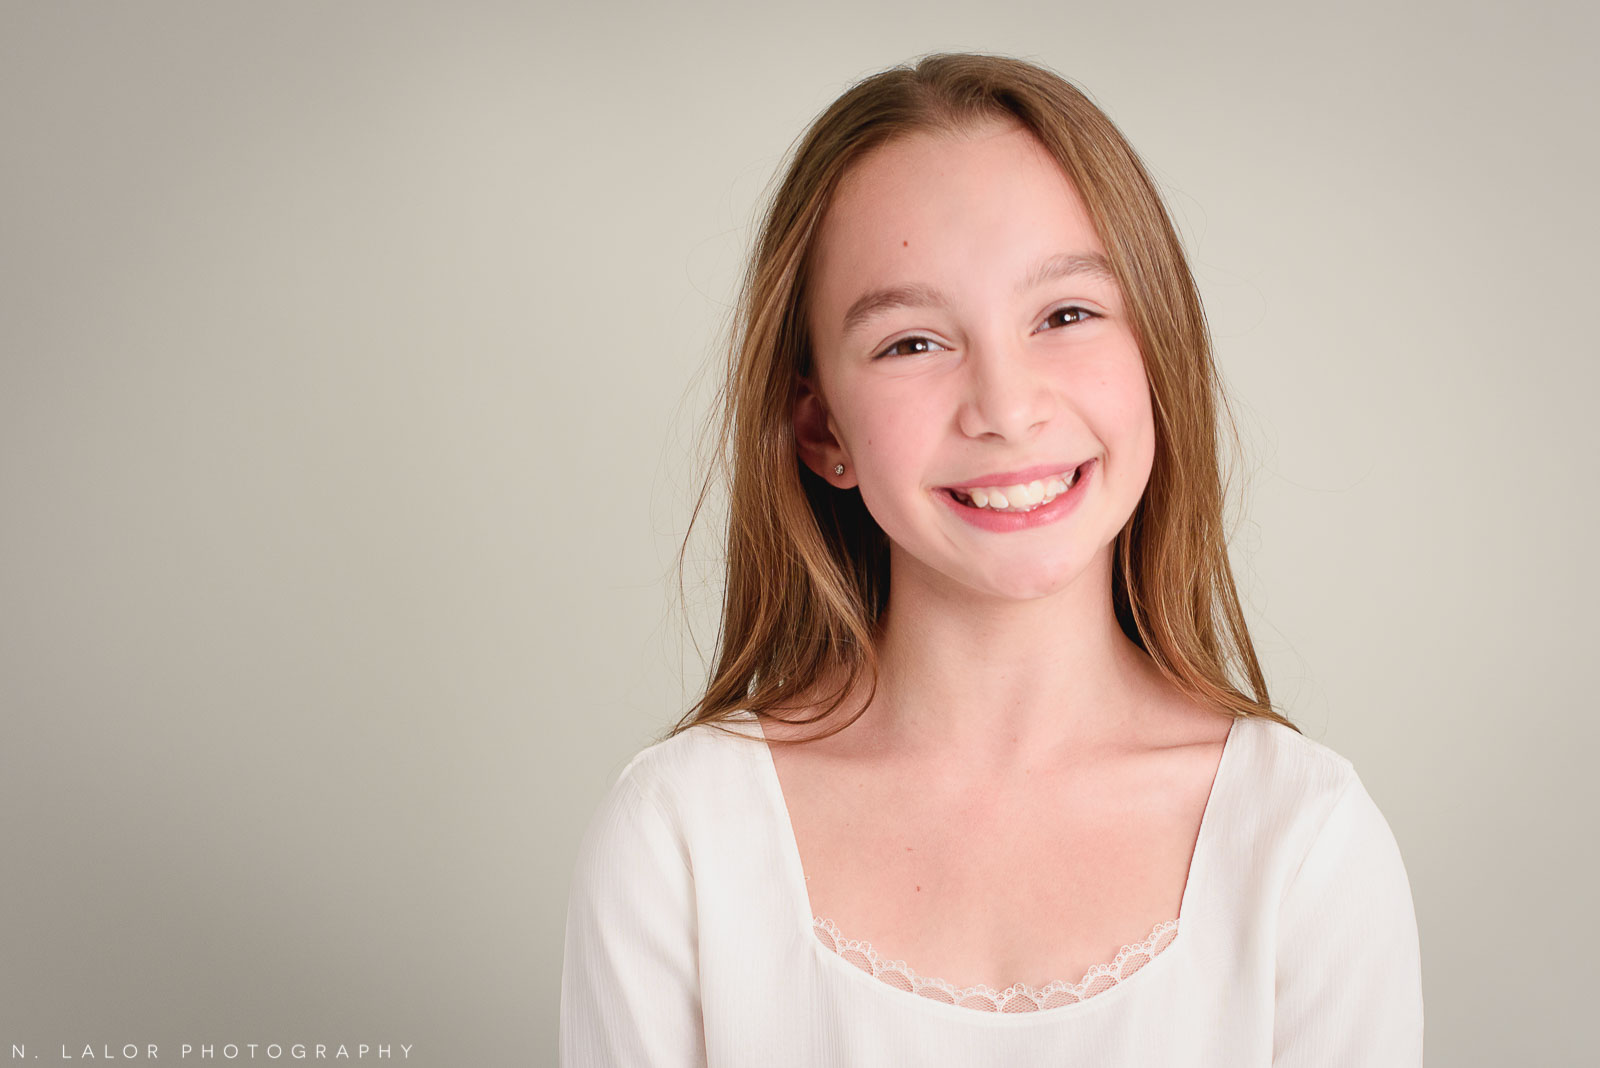 All smiles. Tween ballerina photoshoot with N. Lalor Photography. Greenwich, Connecticut.